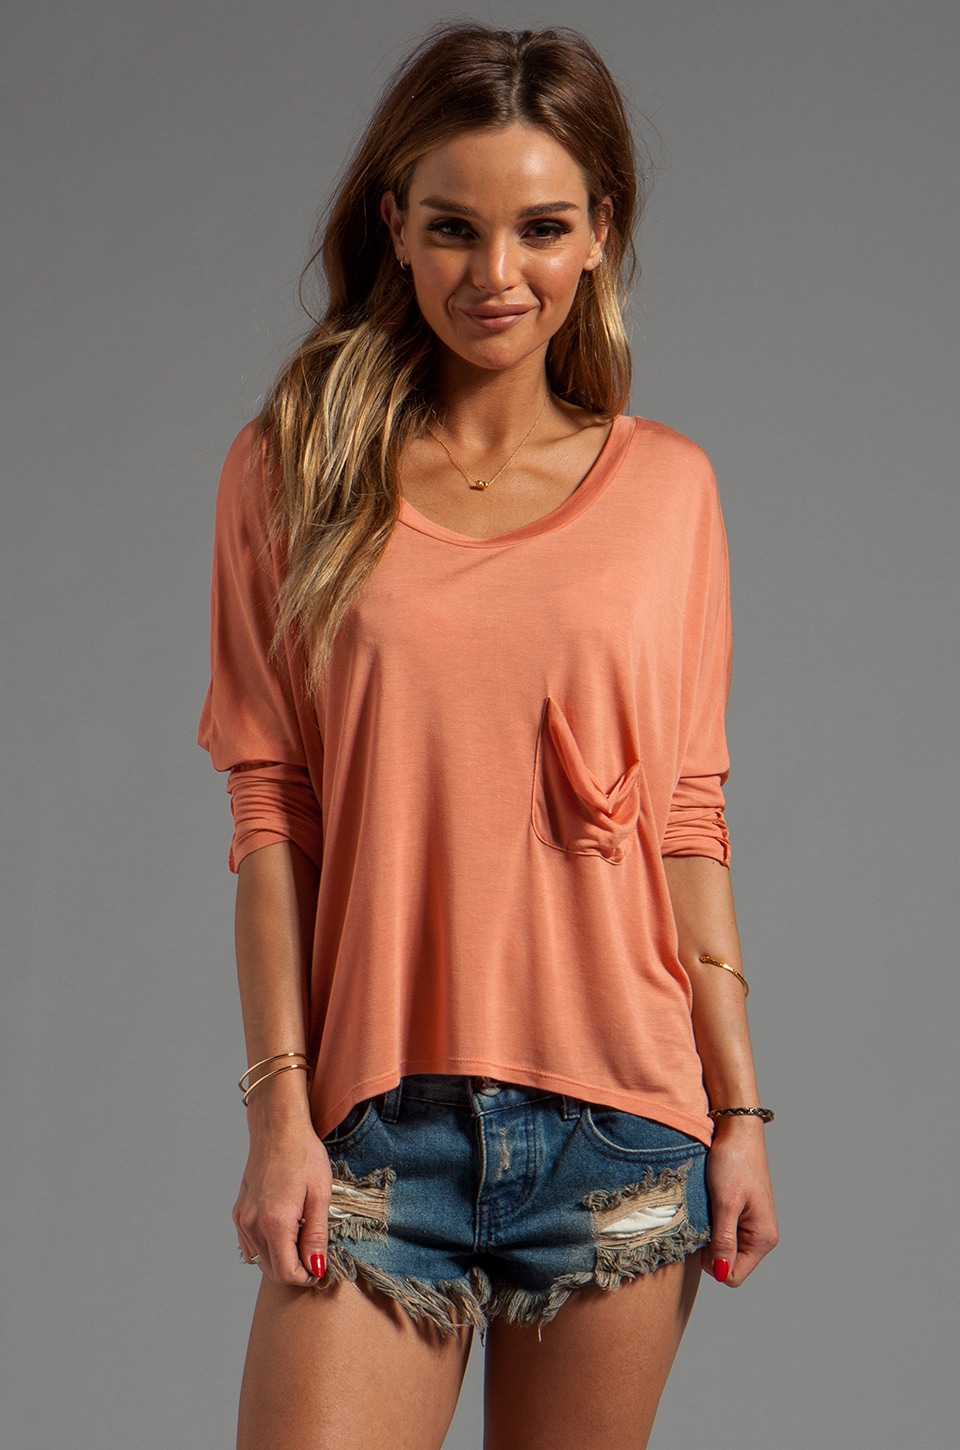 Blue Life Marteeni Pocket Top in Forbidden Peach